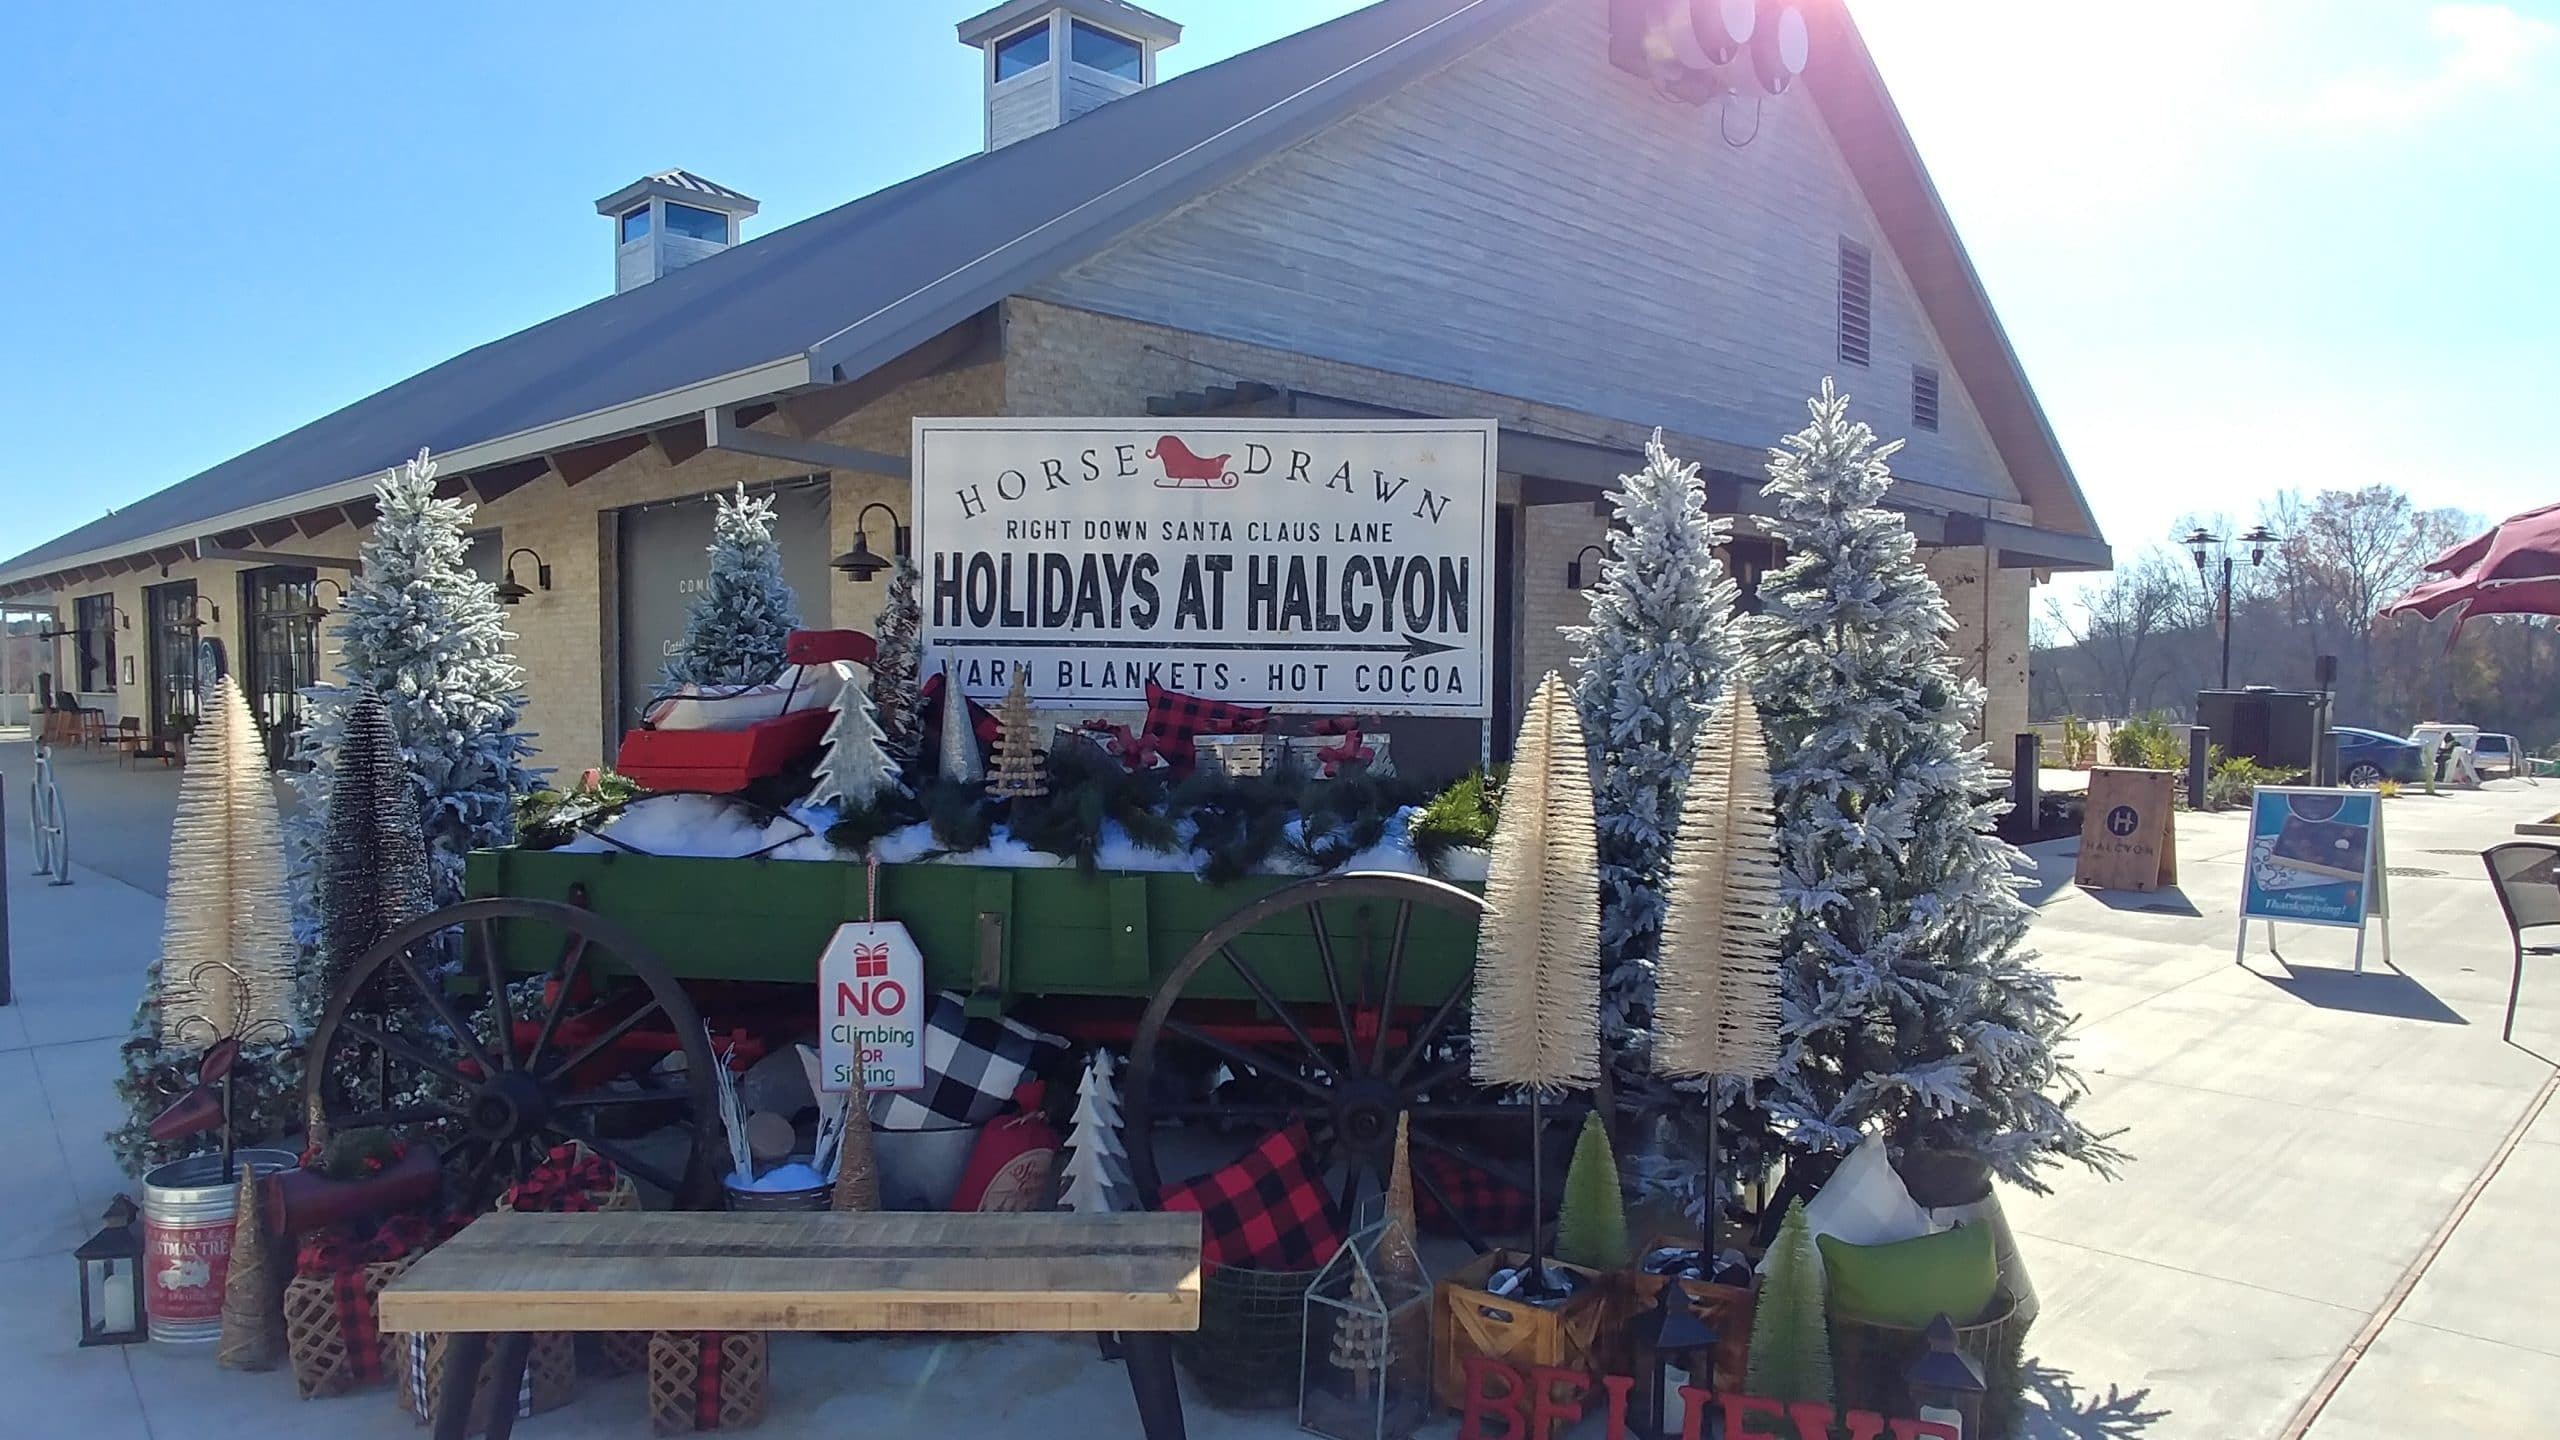 Holidays at Halcyon to Kick Off this Weekend